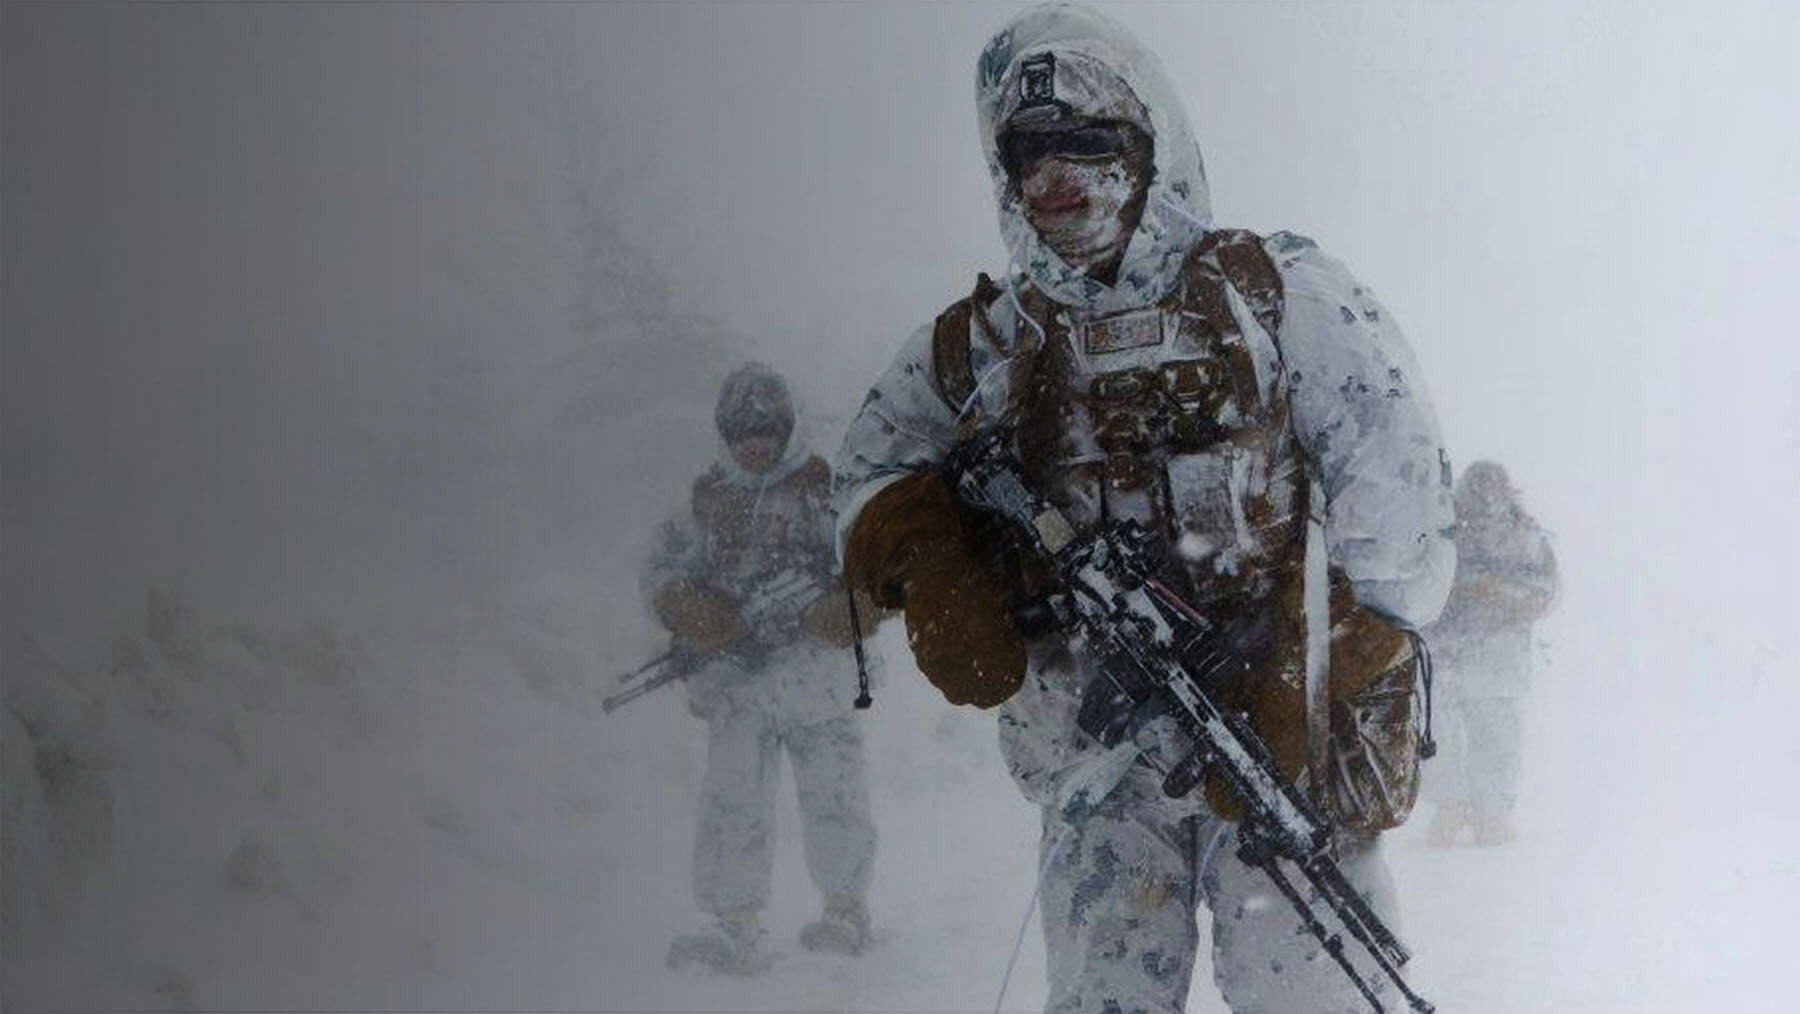 Marines in white and gray patterned cammies walk in heavy snow.